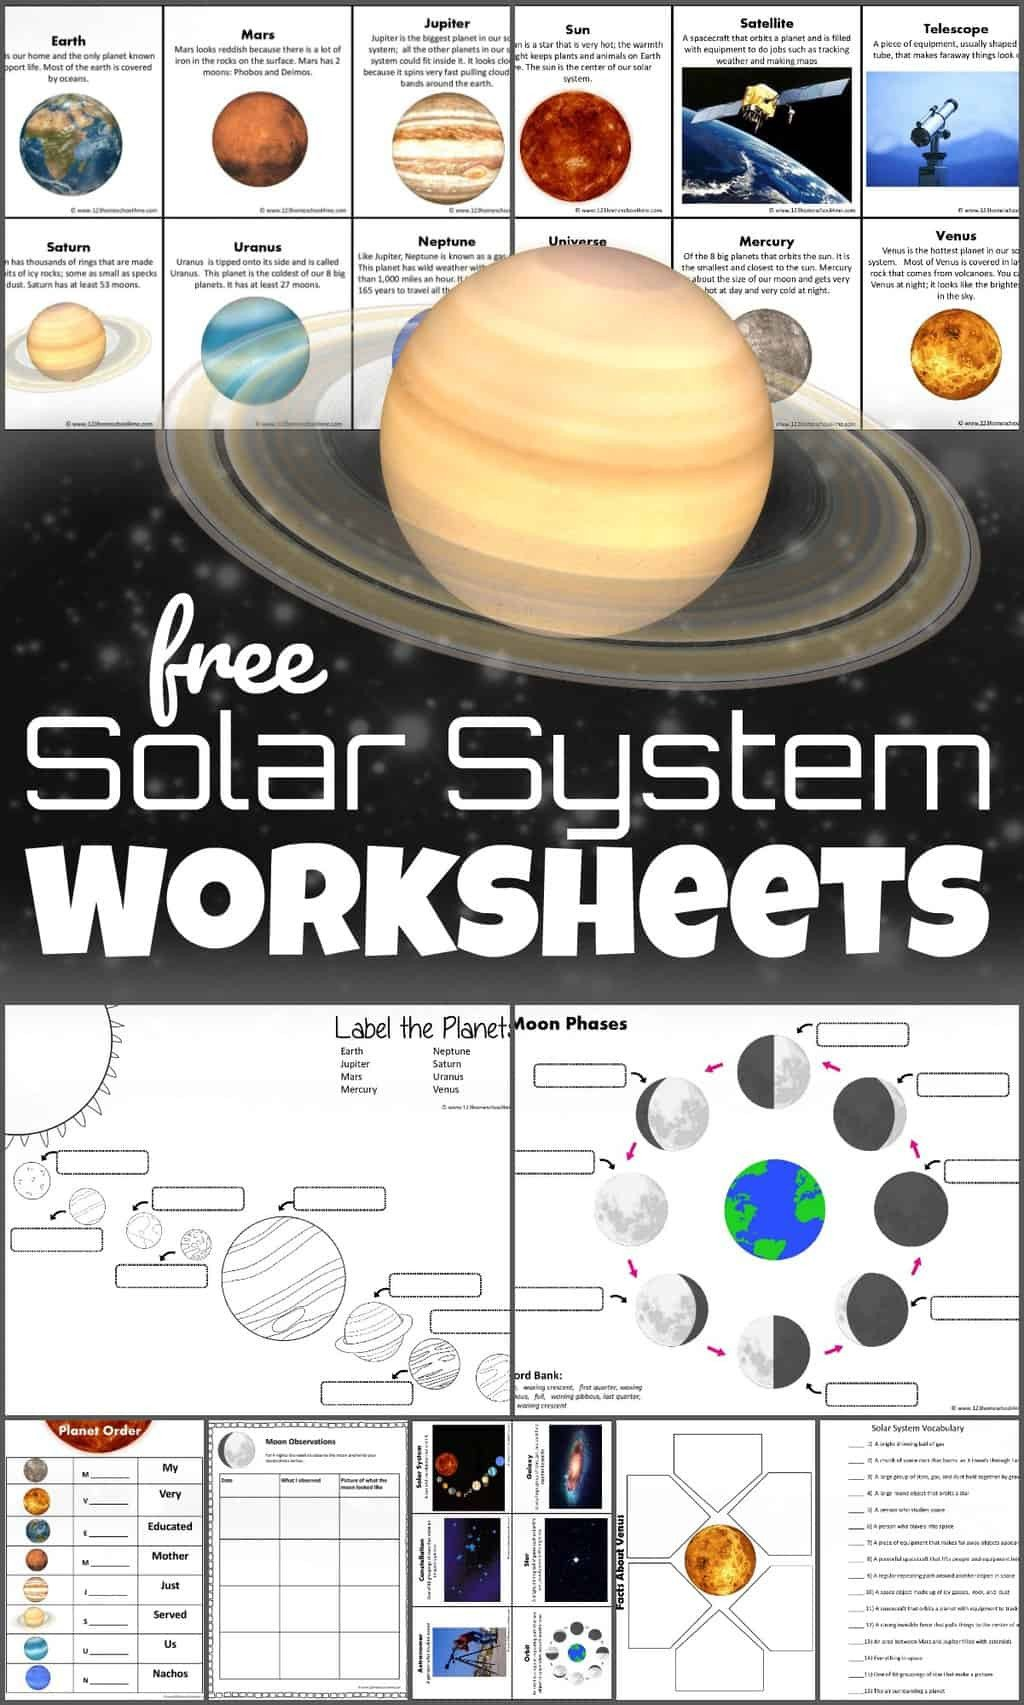 Solar System Worksheets 5th Grade Free solar System Worksheets